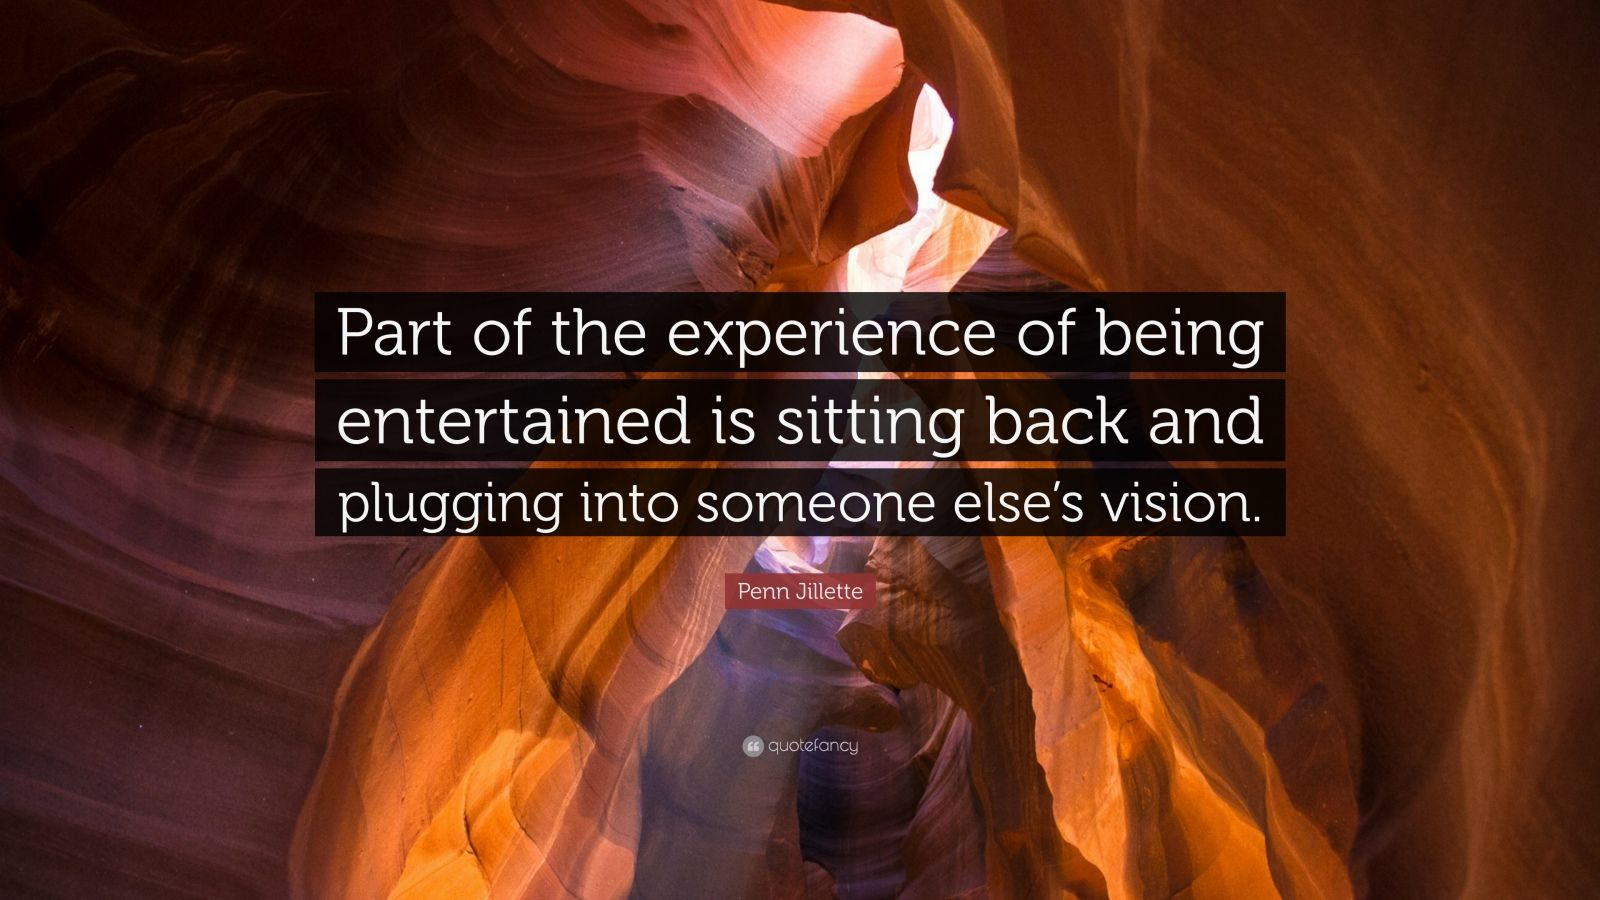 """Penn Jillette Quote: """"Part of the experience of being entertained is sitting back and plugging into someone else's vision."""""""